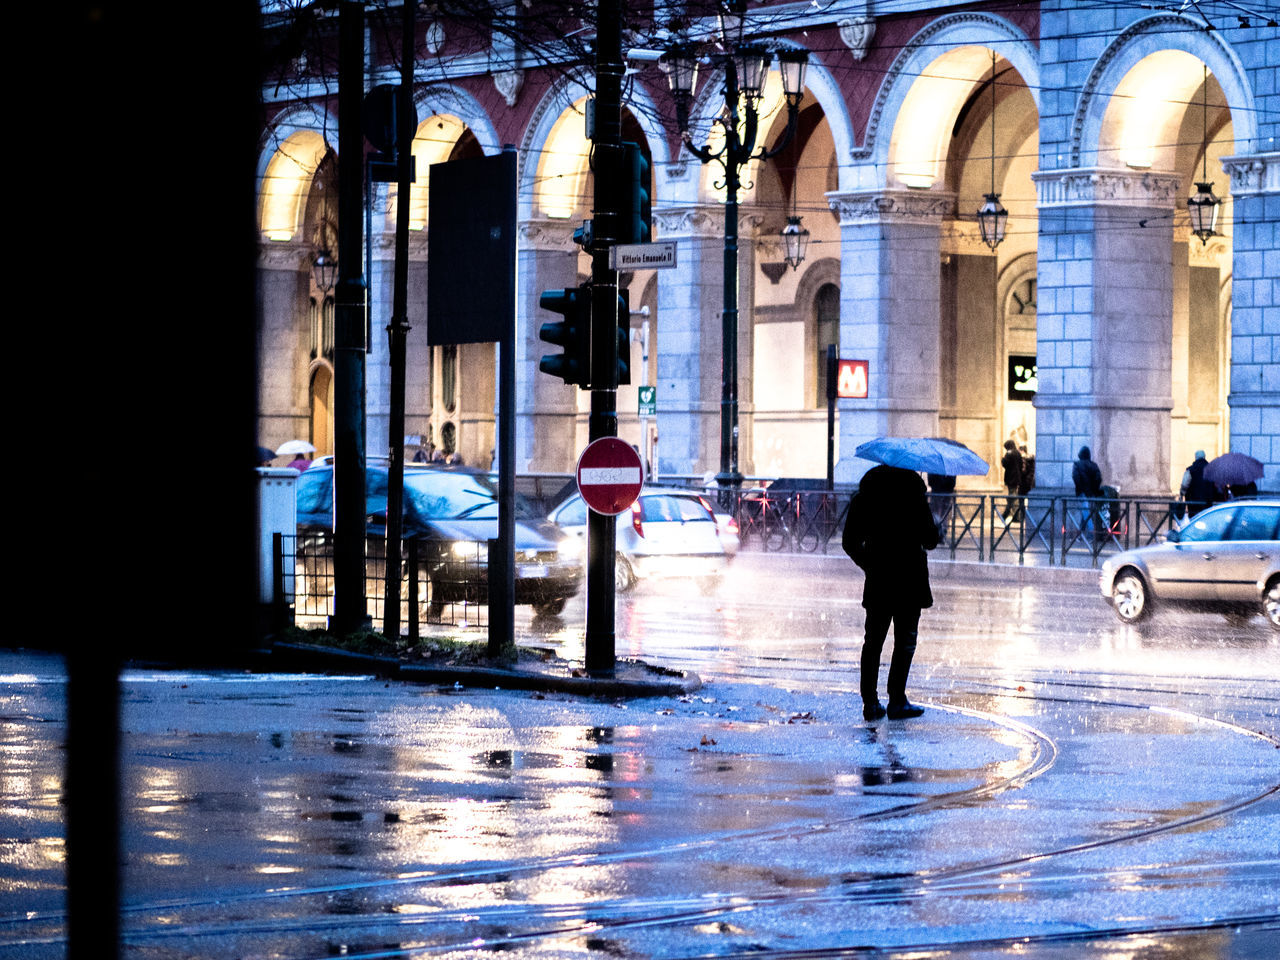 Raining in the streets Arch Architectural Column Architecture Building Exterior Built Structure City Cold Temperature Full Length Italy Men Night Outdoors People Raining Travel Destinations Turin Winter The City Light